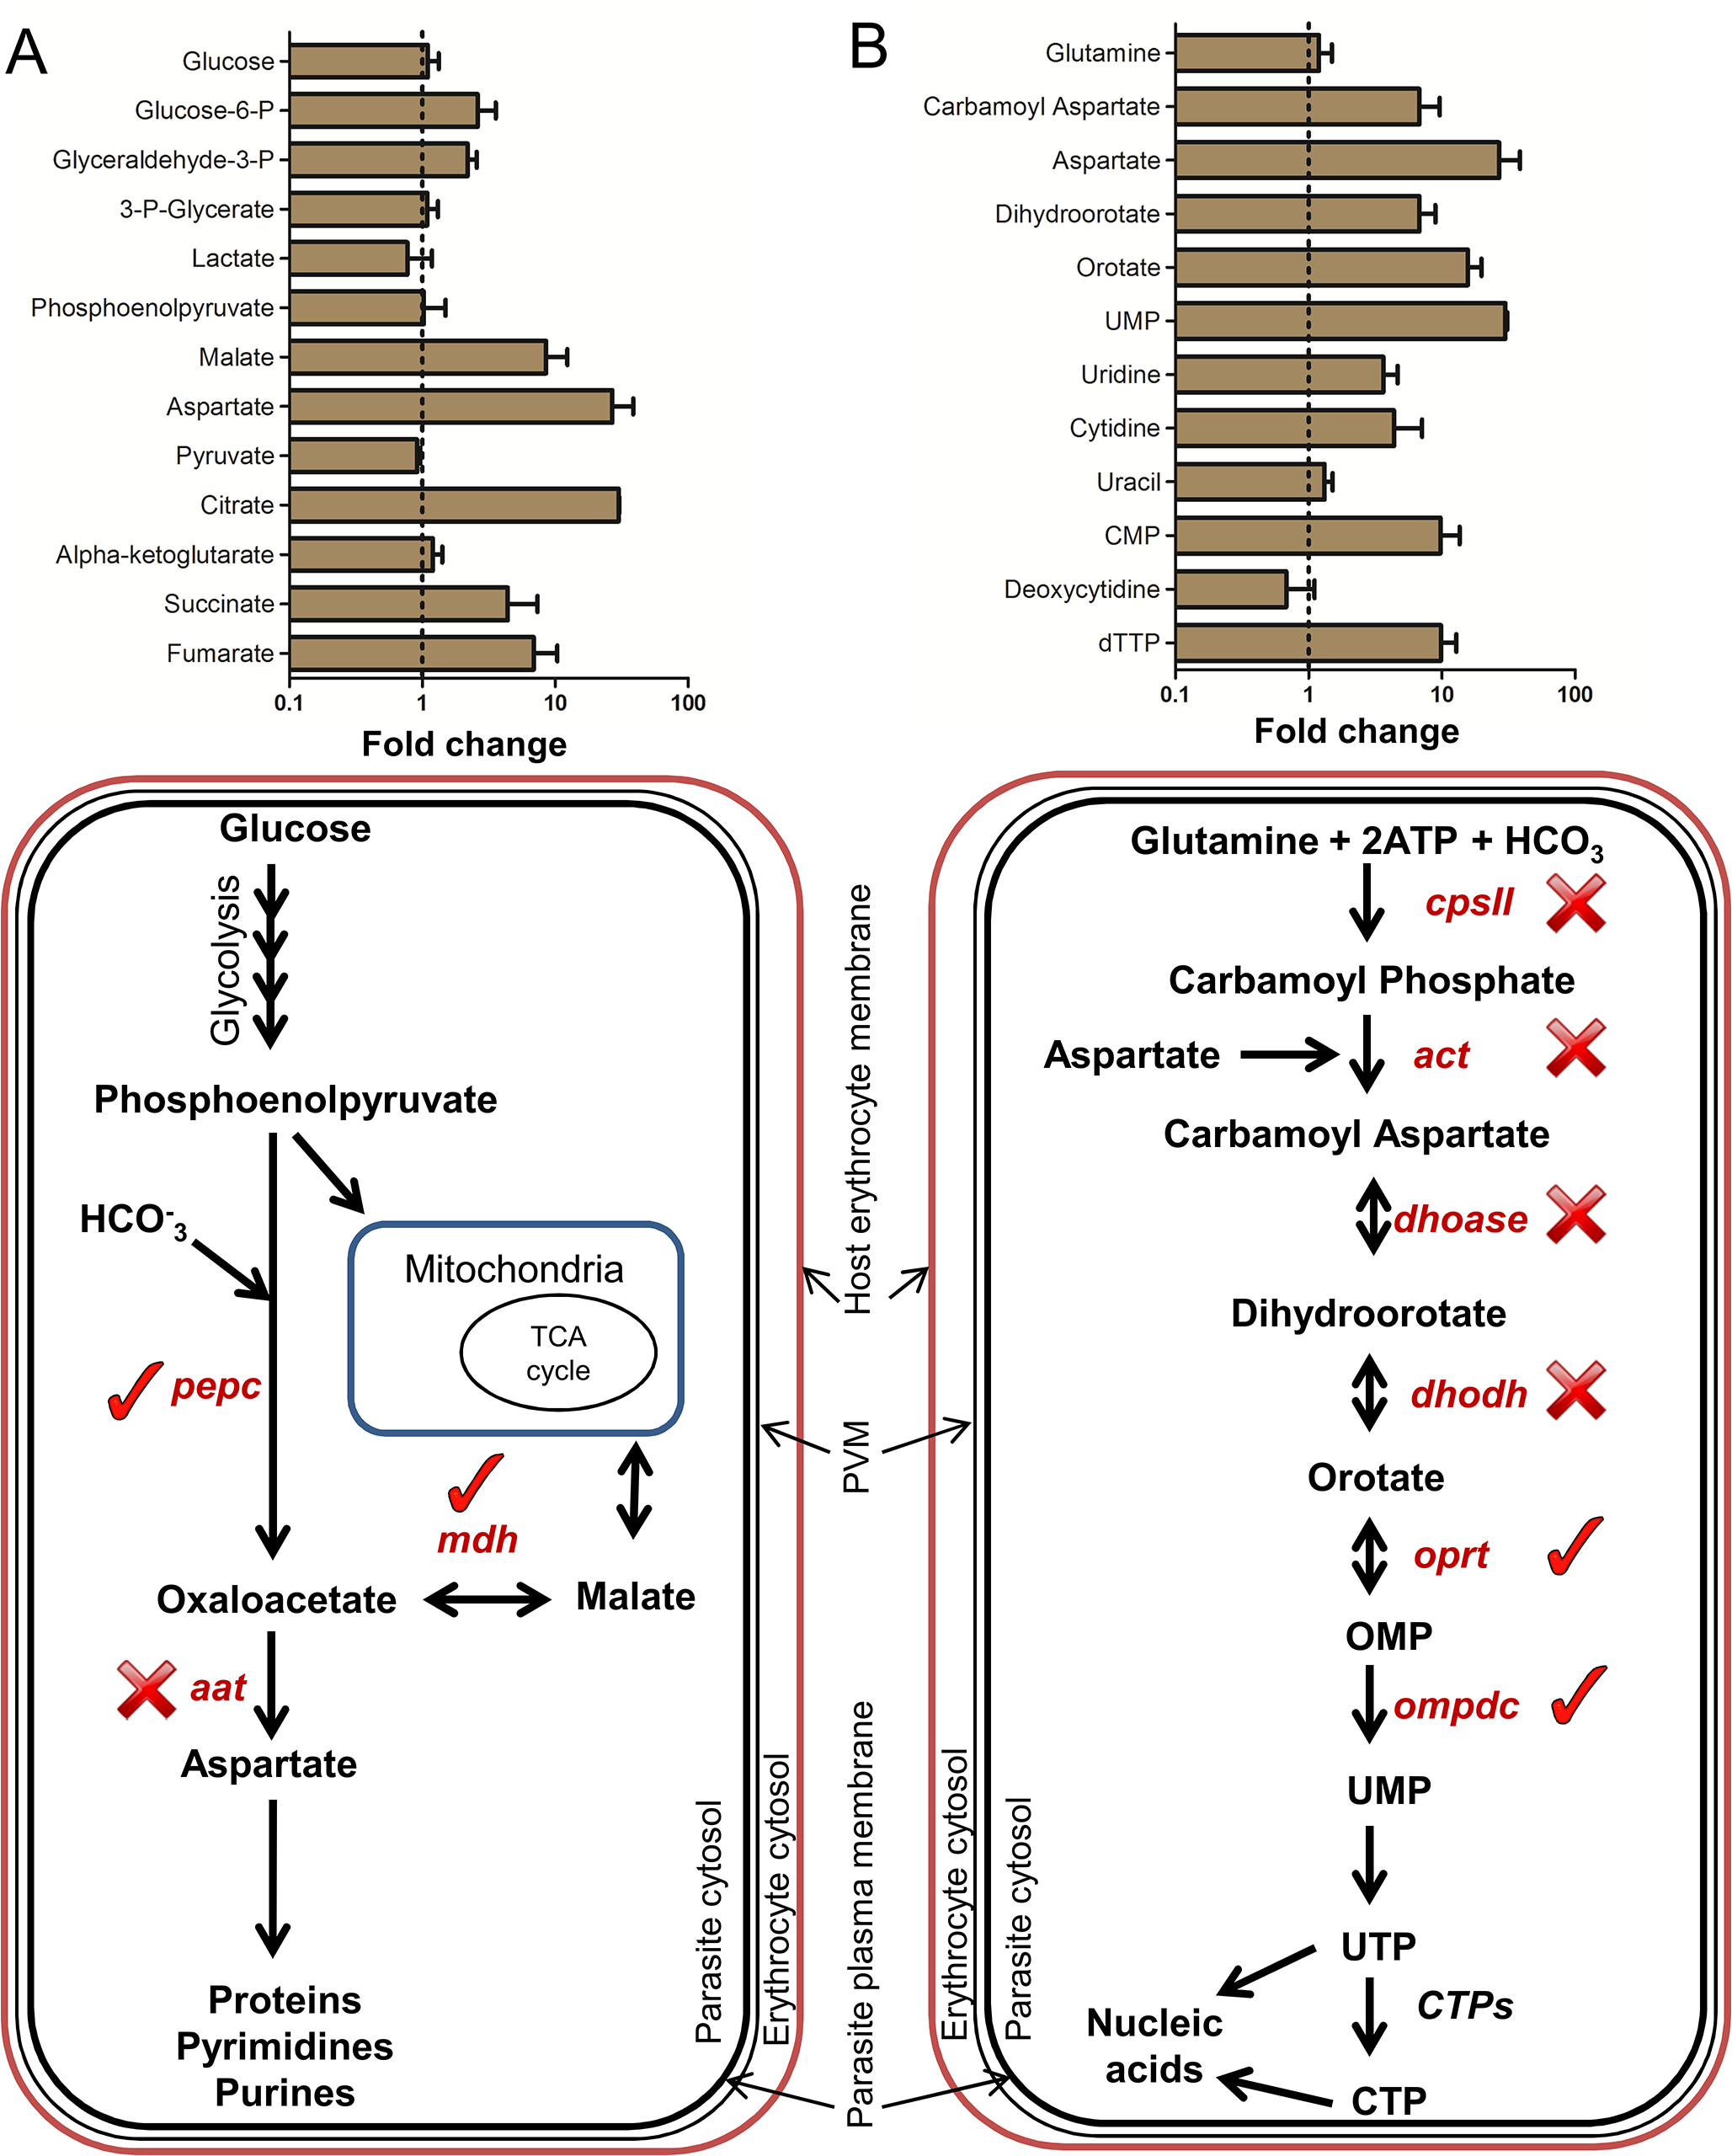 Metabolites of intermediary carbon metabolism (ICM) and pyrimidine biosynthesis are up-regulated in reticulocytes.